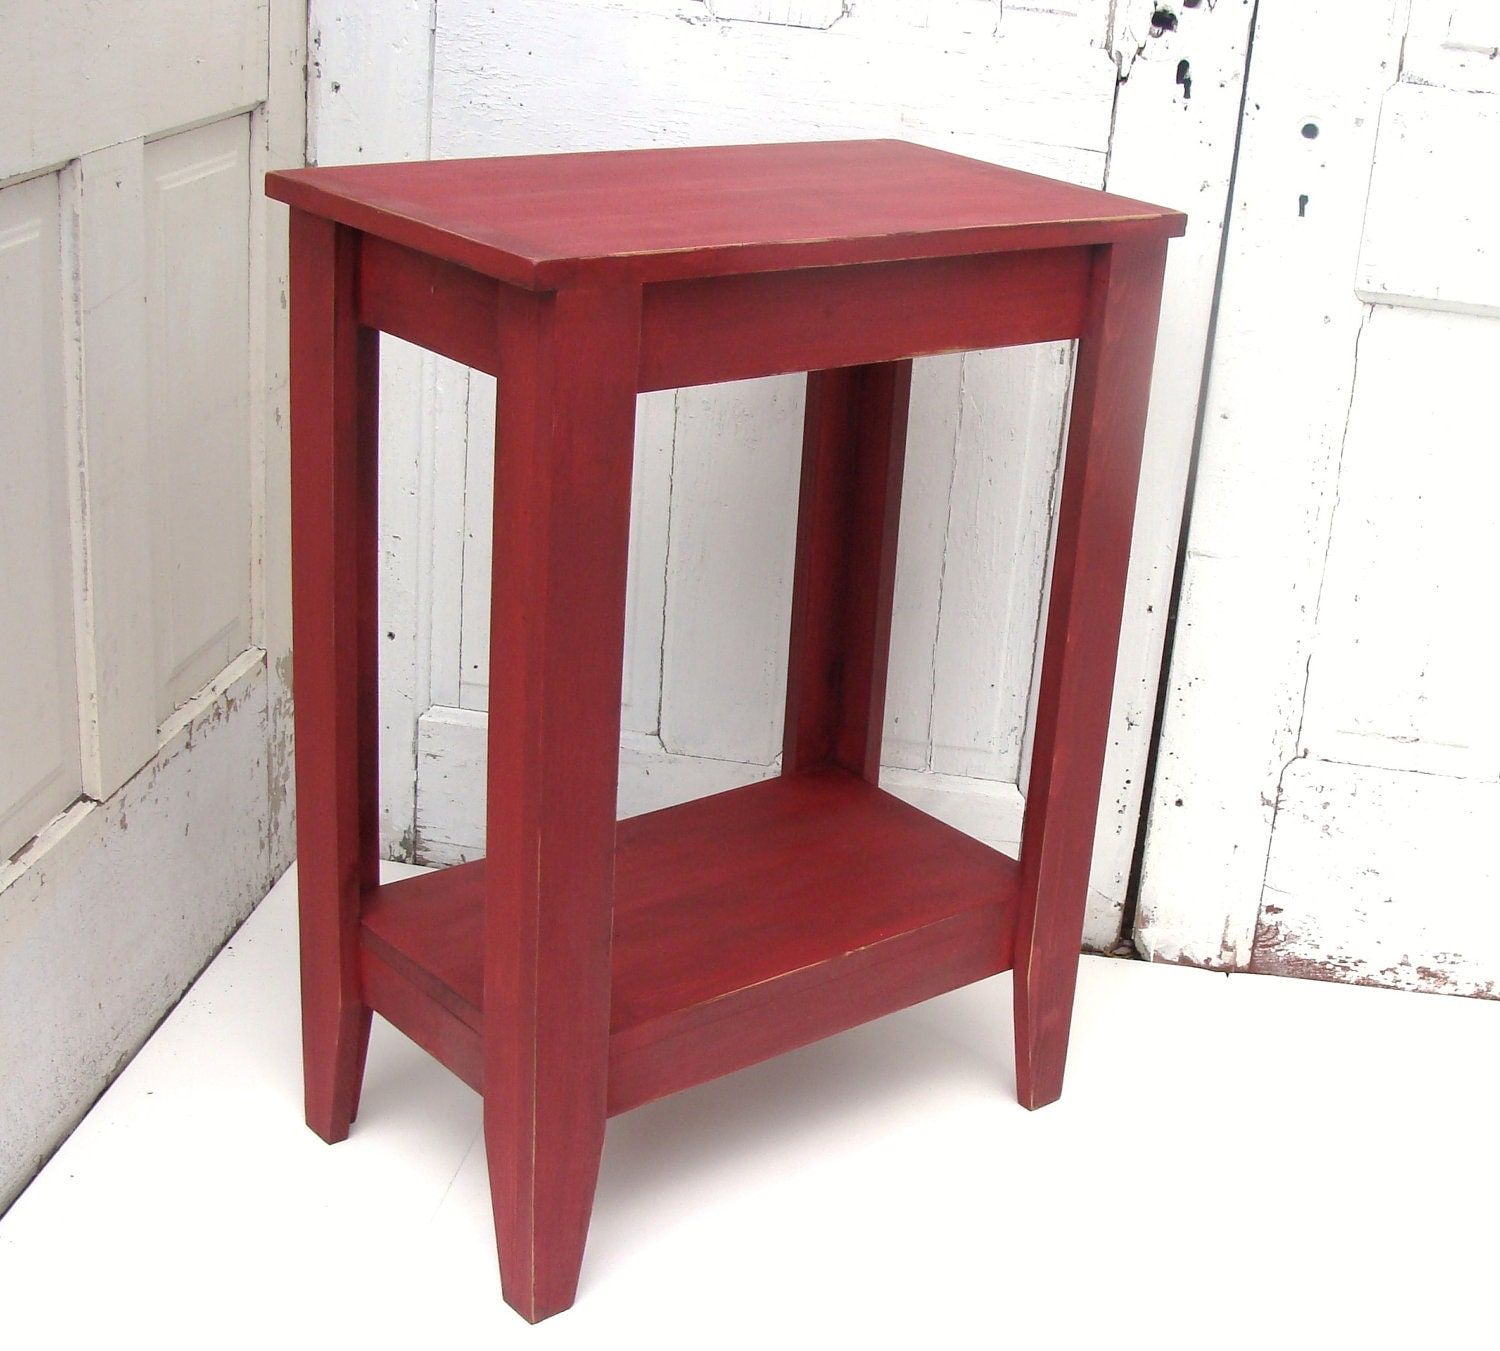 Entryway Table Side Table Console Table Rustic